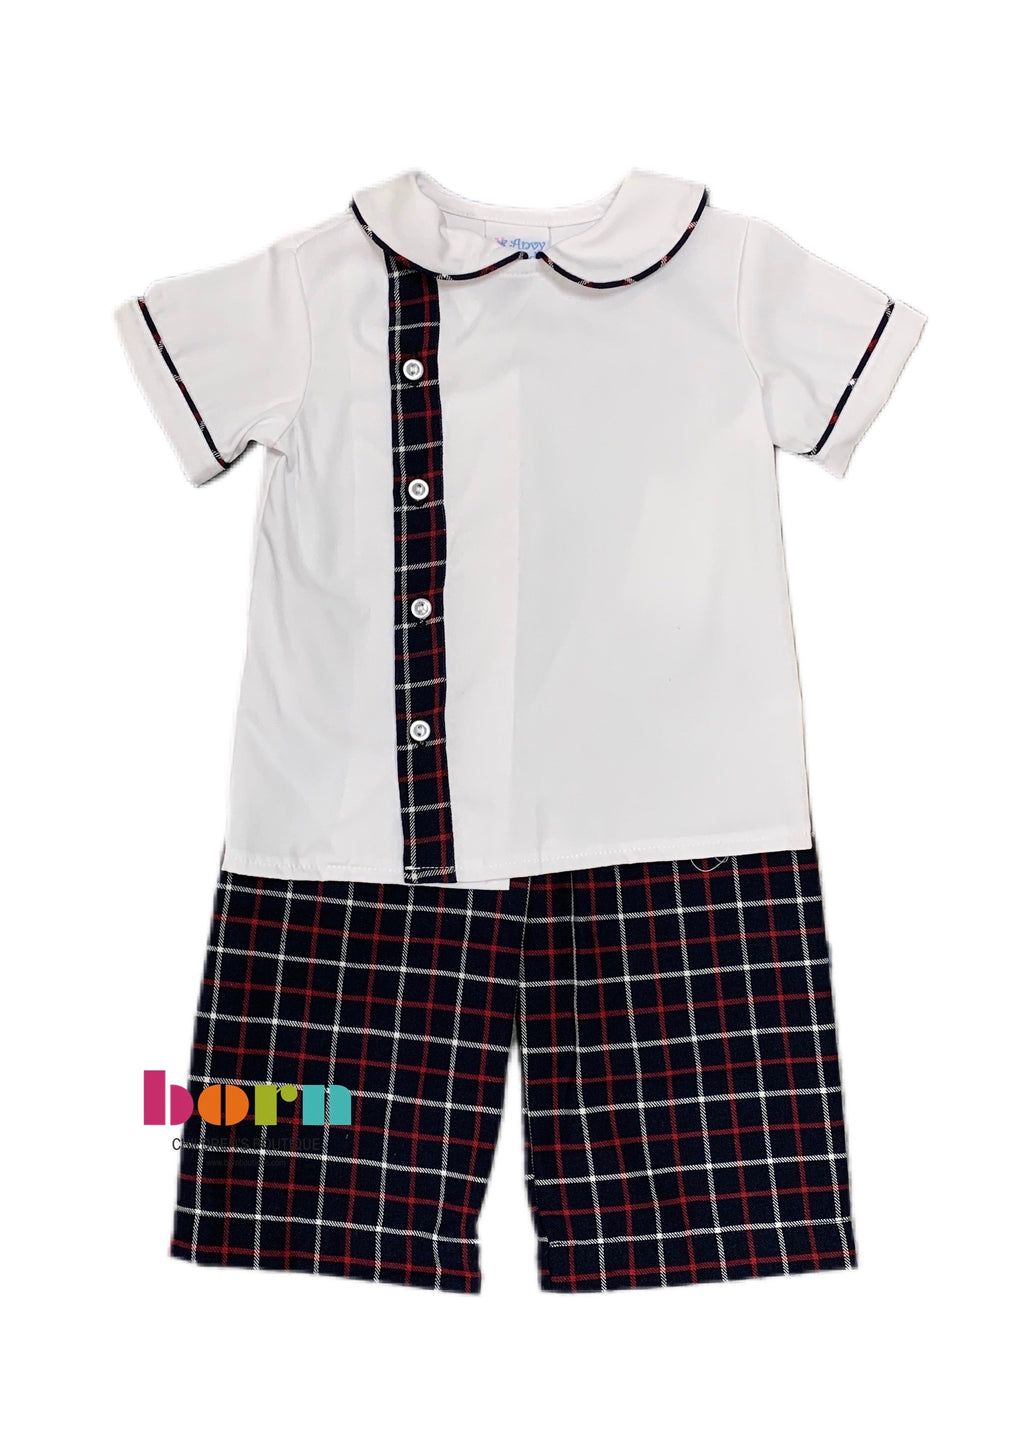 Thomas Boy Set - Navy Twill Plaid - Born Childrens Boutique